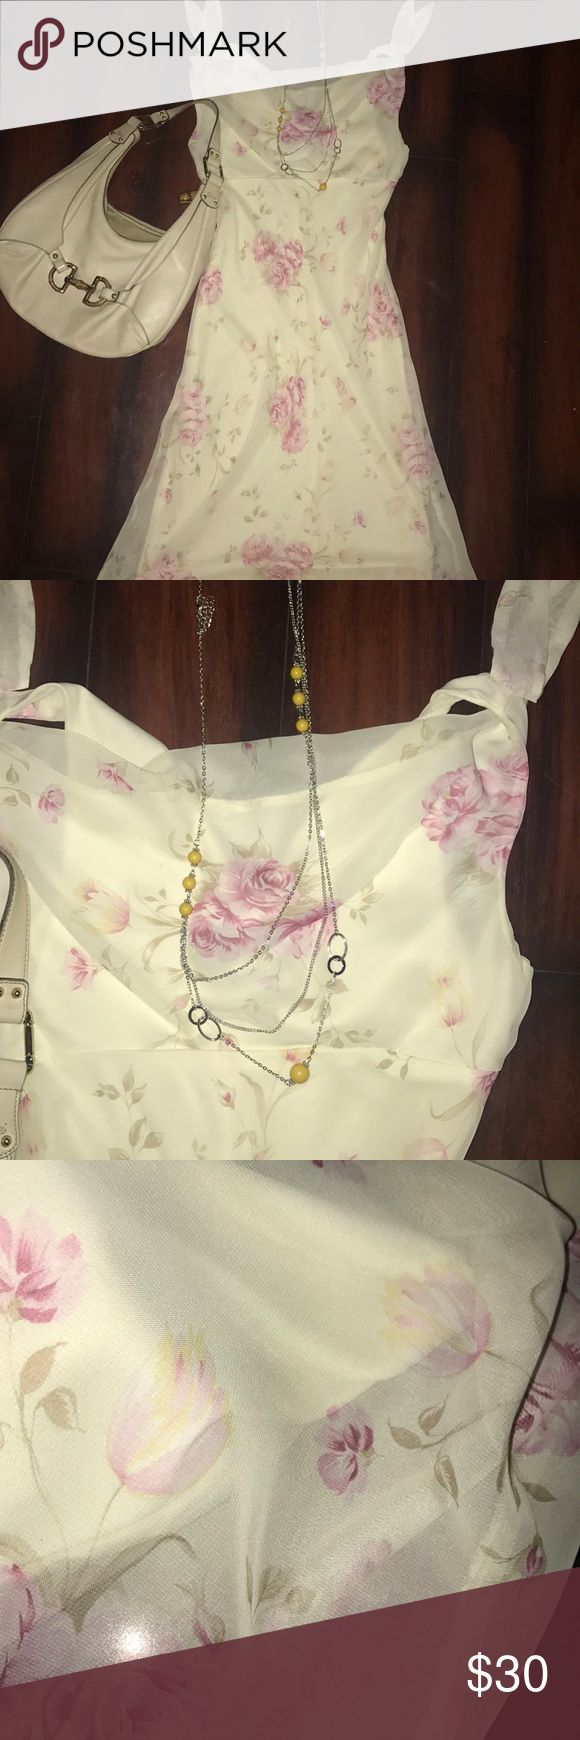 Fabulous Easter Dress Beautiful light yellow dress with pink flowers. This dress is gorgeous on!!! Sheer on top with solid lining. Necklace and earrings included!!  Outfit is perfect for Easter or Sunday brunch! Dresses Midi